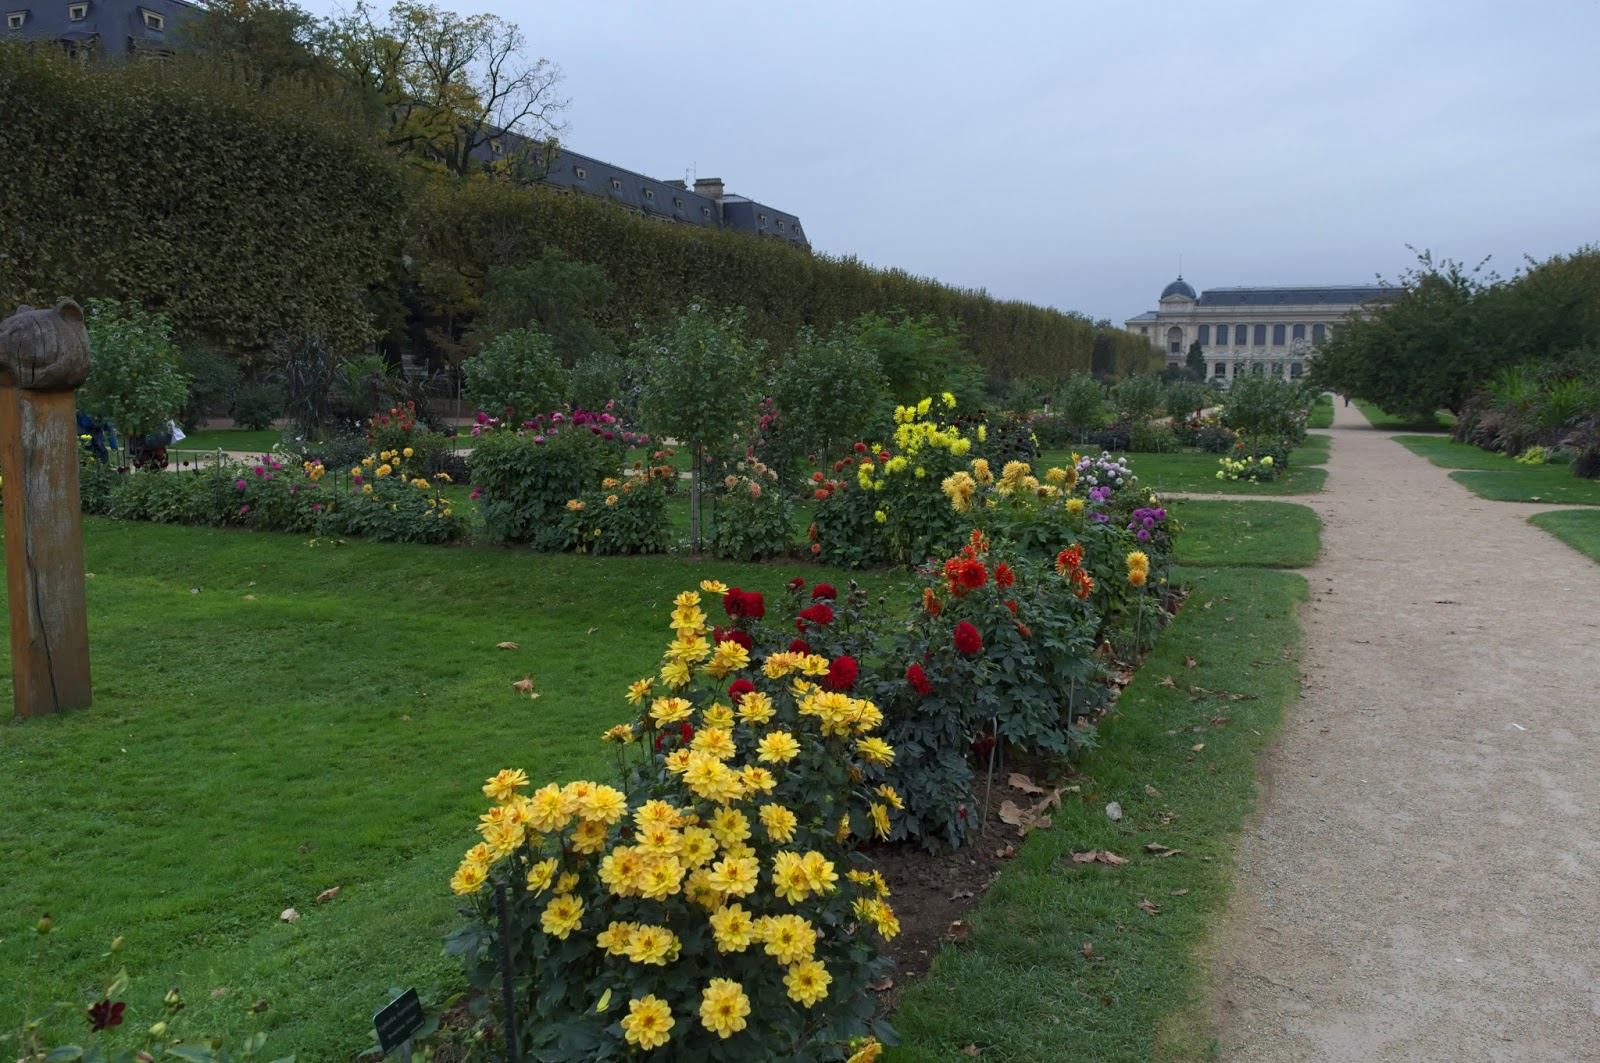 Jardin de plantes Paris with flowers.